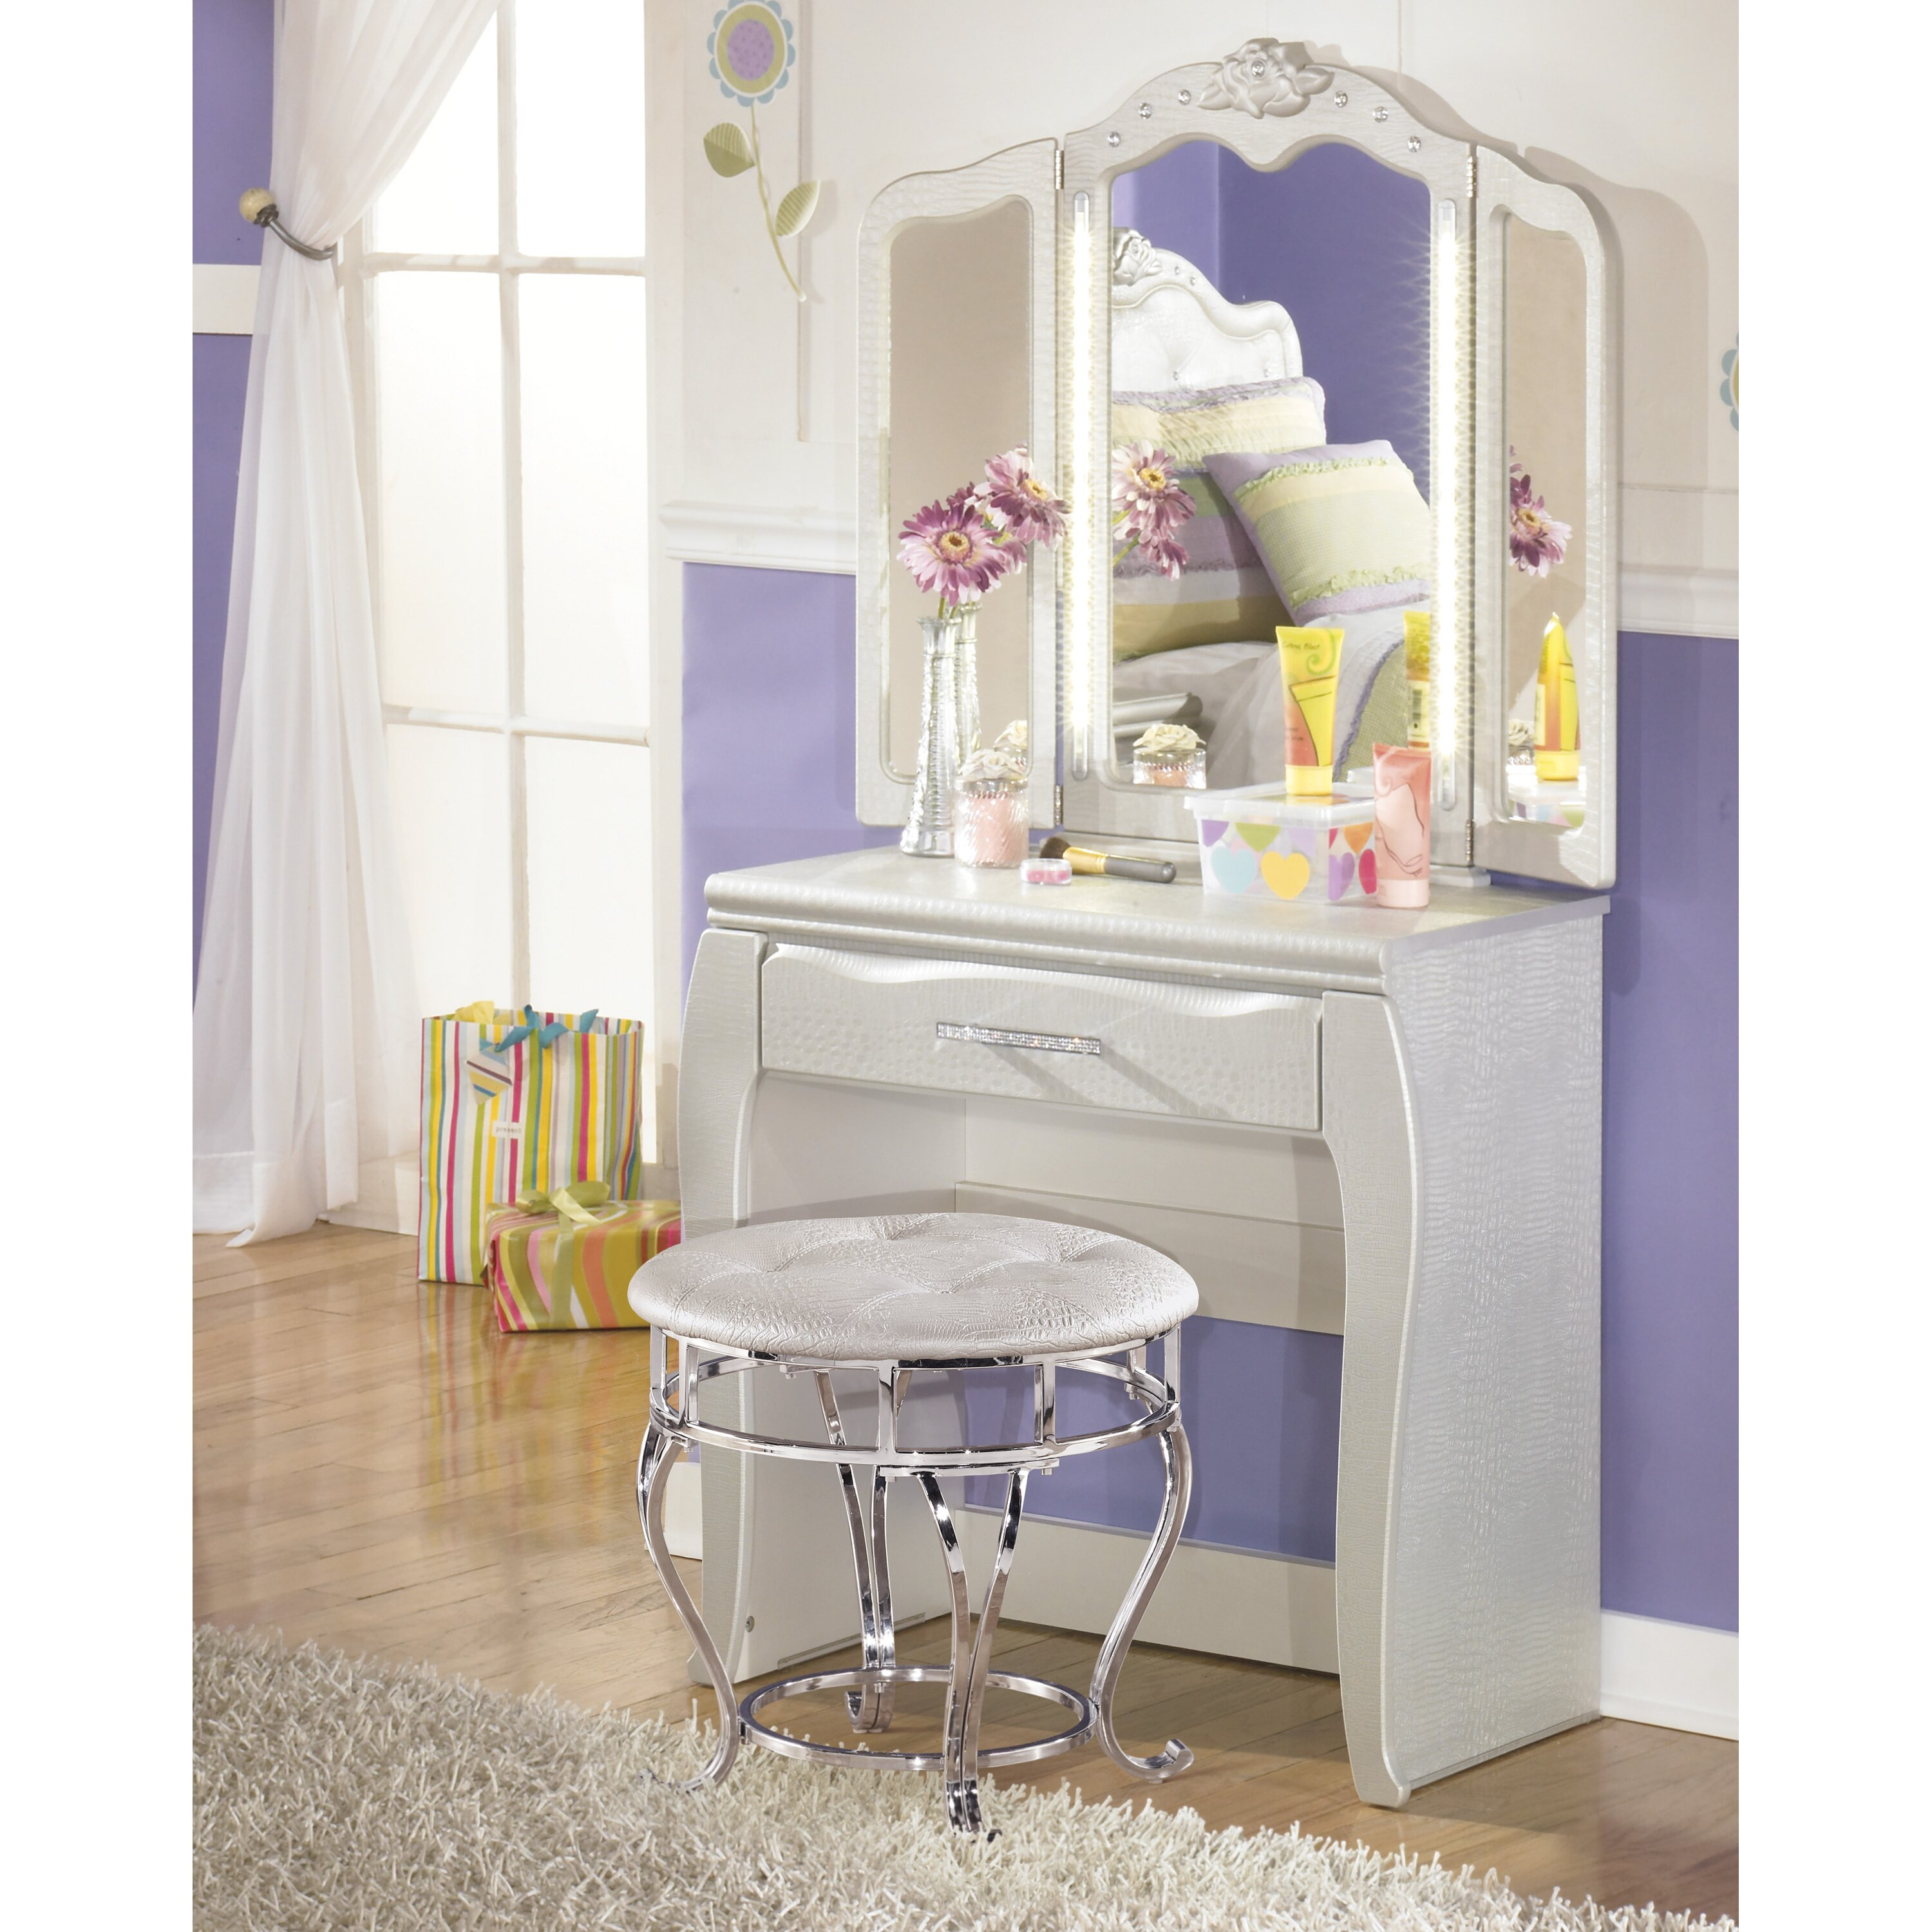 Signature Design By Ashley Zarollina Crowned Top Dresser Mirror Reviews